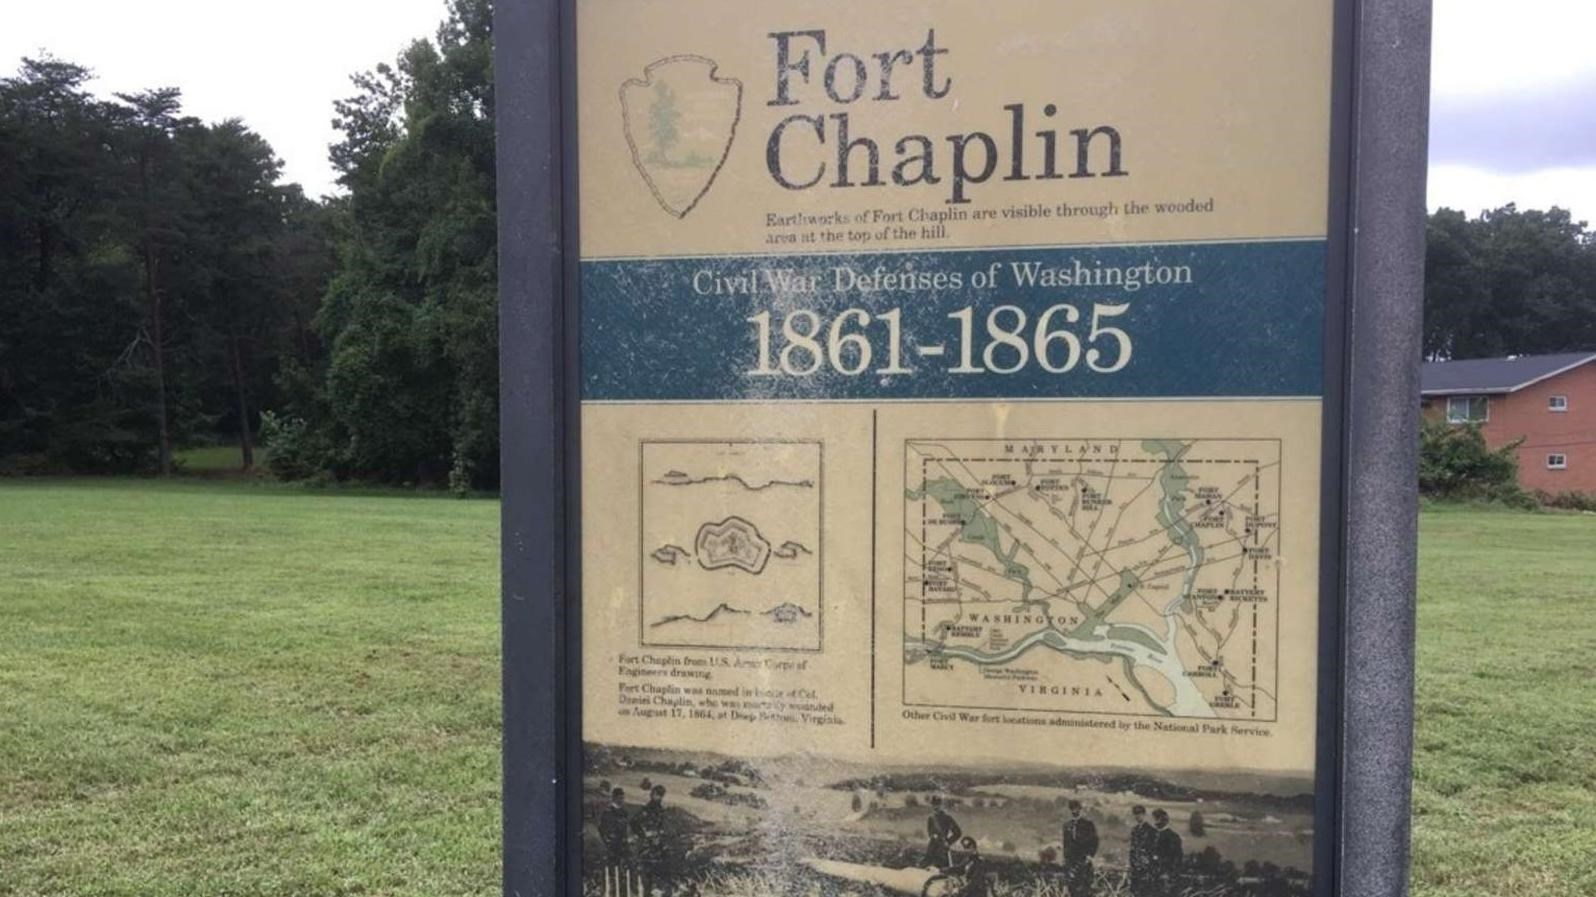 An interpretive panel describes Fort Chaplin